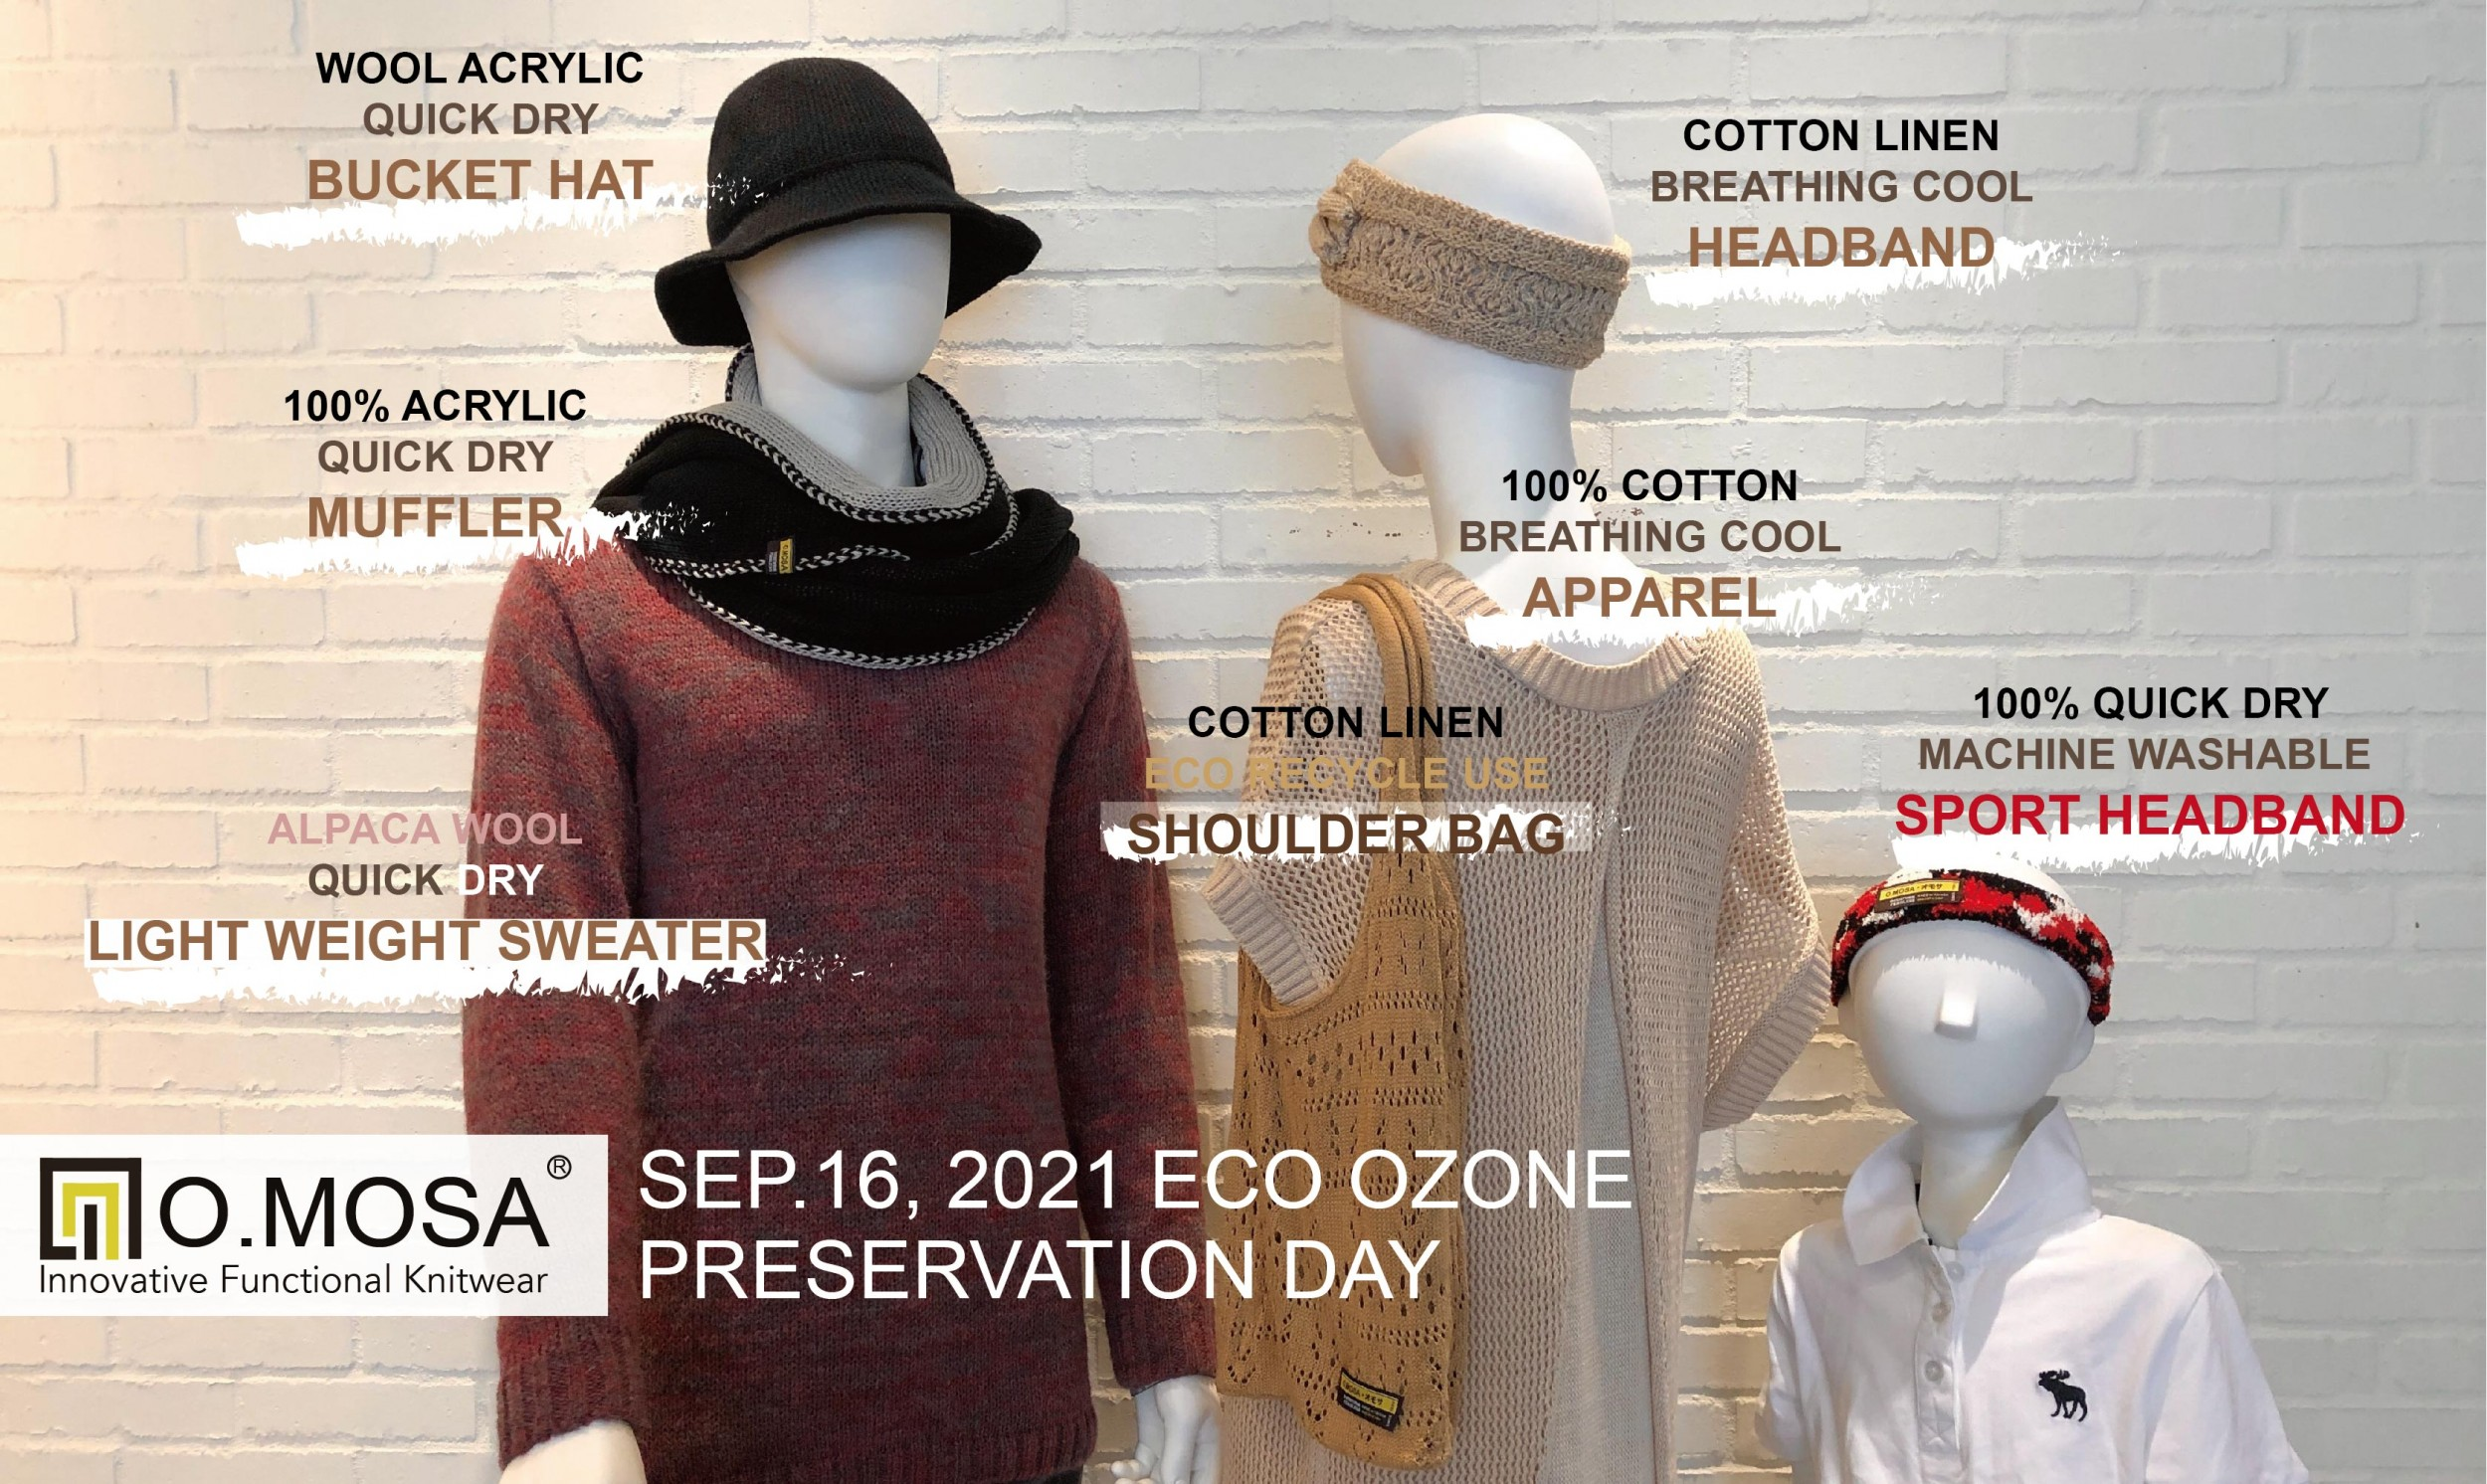 omosa taiwan knitting odm factory eco ozone preservation day